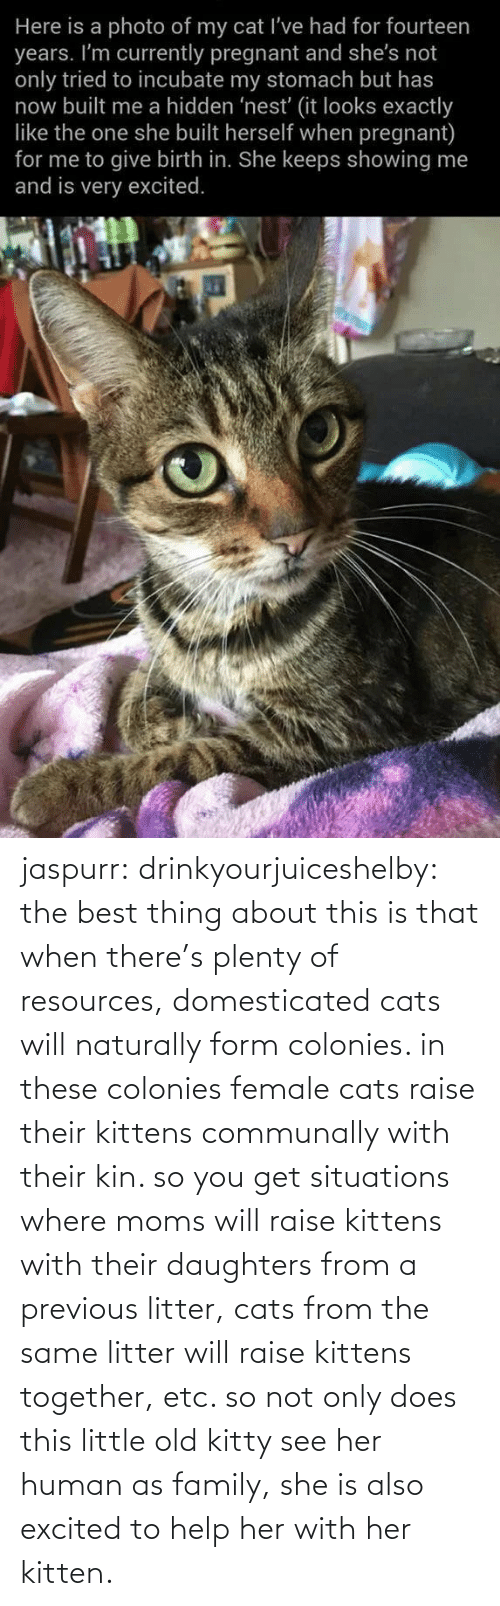 Where: jaspurr:  drinkyourjuiceshelby:    the best thing about this is that when there's plenty of resources, domesticated cats will naturally form colonies. in these colonies female cats raise their kittens communally with their kin. so you get situations where moms will raise kittens with their daughters from a previous litter, cats from the same litter will raise kittens together, etc. so not only does this little old kitty see her human as family, she is also excited to help her with her kitten.